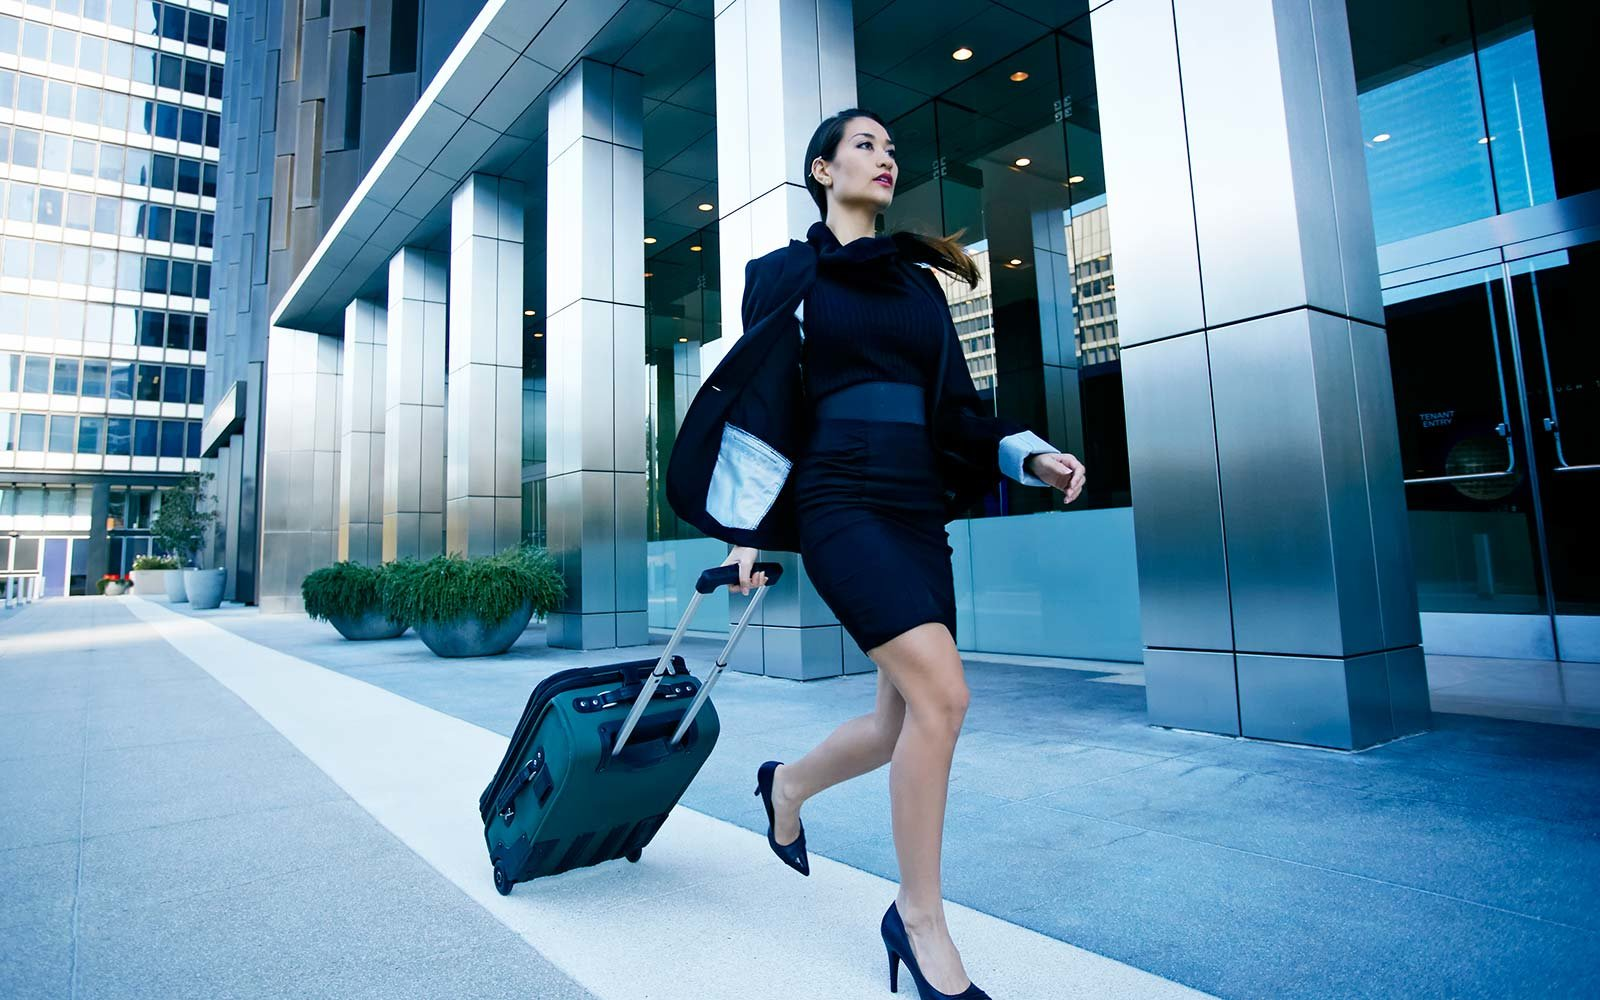 Business female luggage suitcase Business Travel